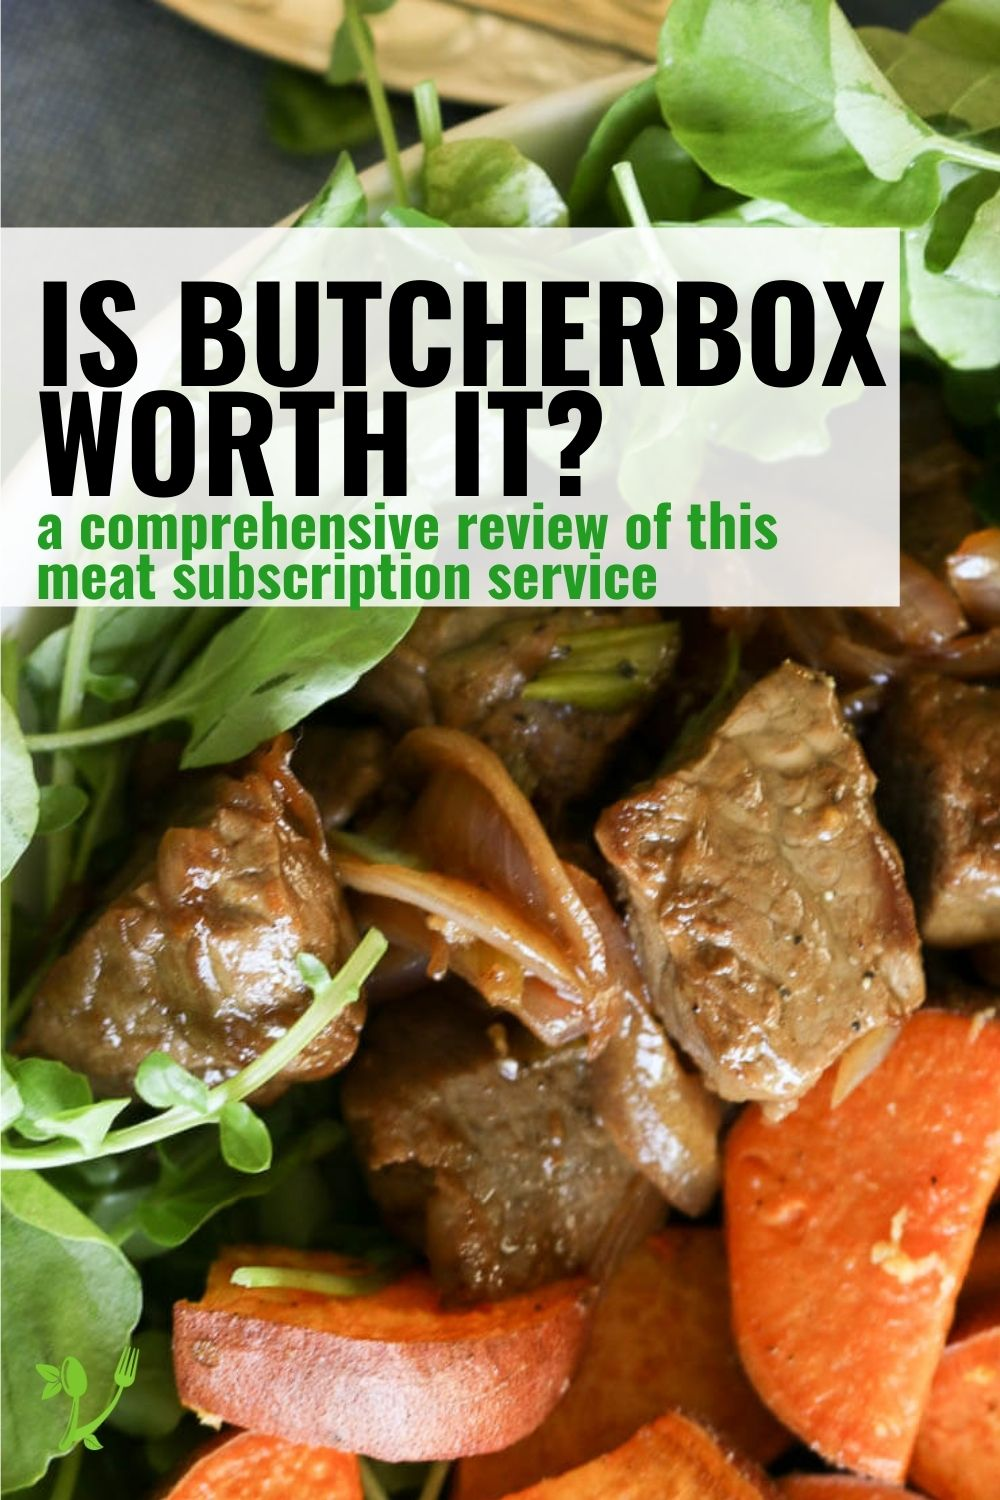 Butcher Box - is it worth it?